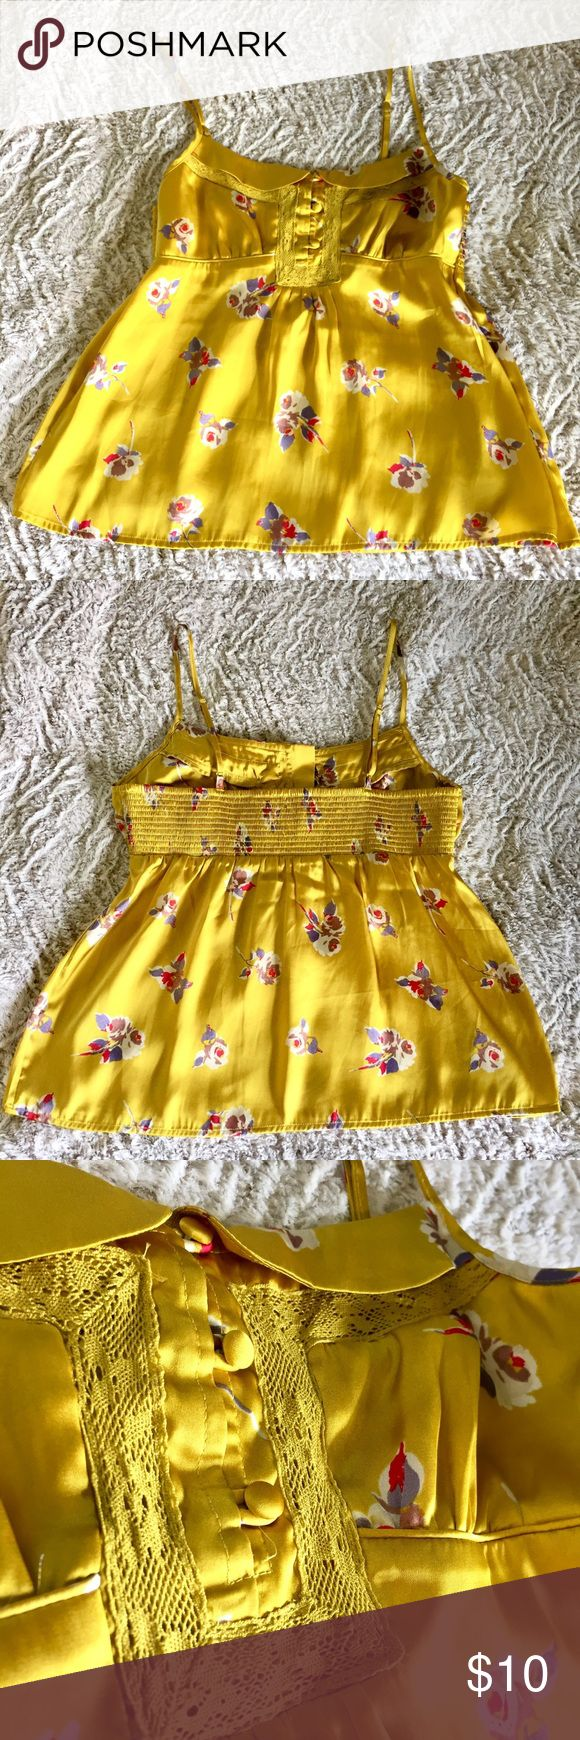 ✨New Listing✨ AE American Eagle floral satin cami Floral Satin Cami by American Eagle Outfitters. Size Medium American Eagle Outfitters Tops